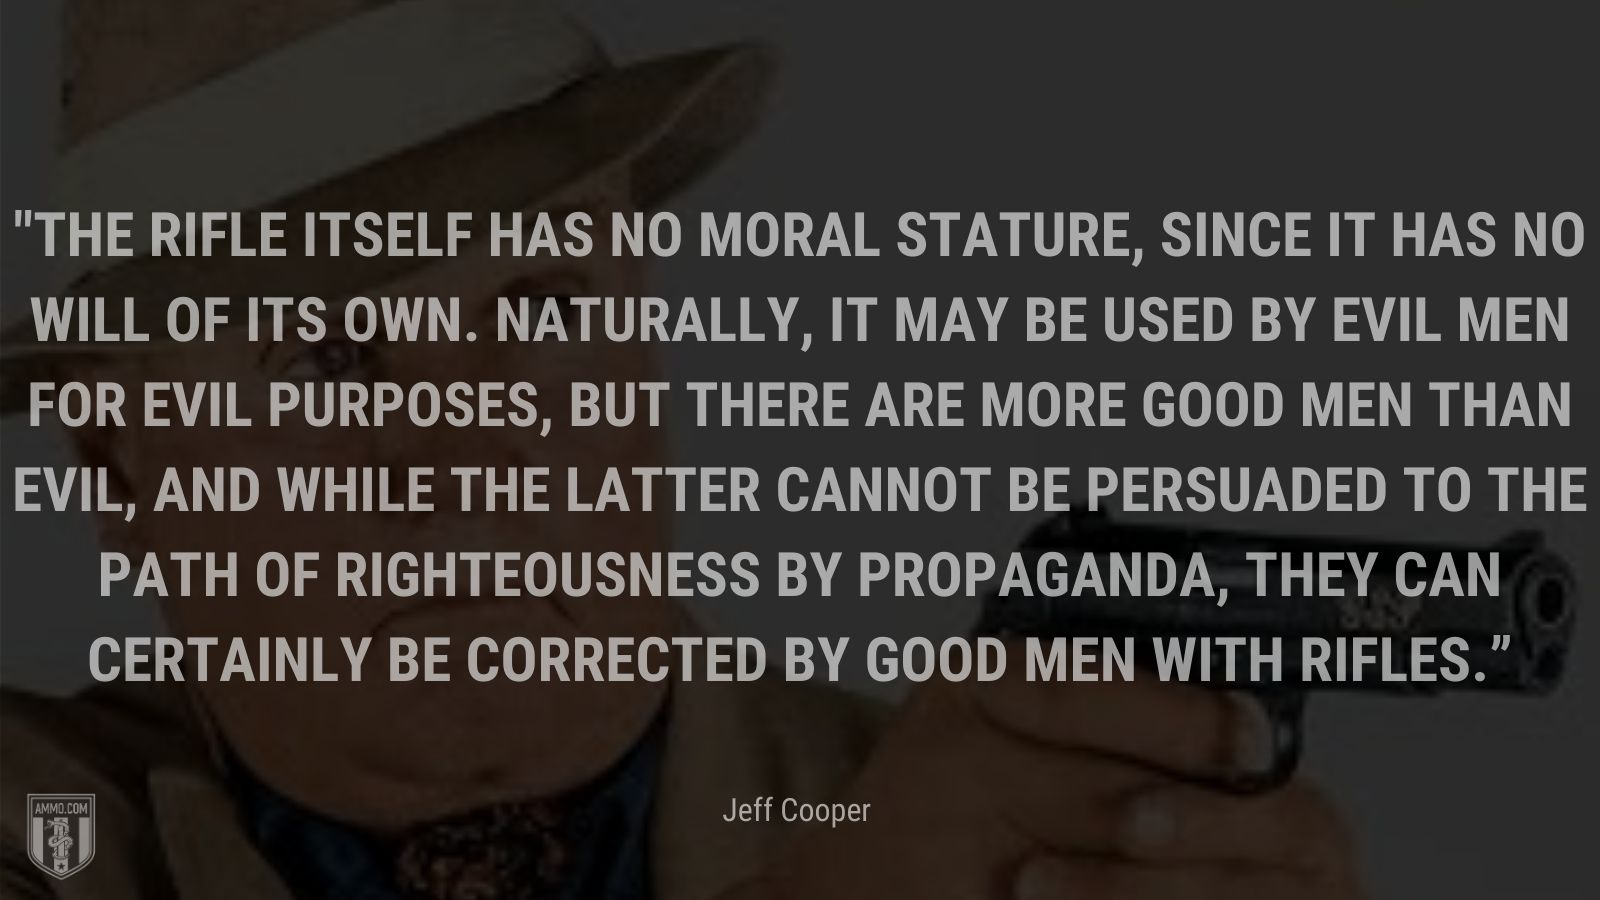 """""""The rifle itself has no moral stature, since it has no will of its own. Naturally, it may be used by evil men for evil purposes, but there are more good men than evil, and while the latter cannot be persuaded to the path of righteousness by propaganda, they can certainly be corrected by good men with rifles."""" - Jeff Cooper"""